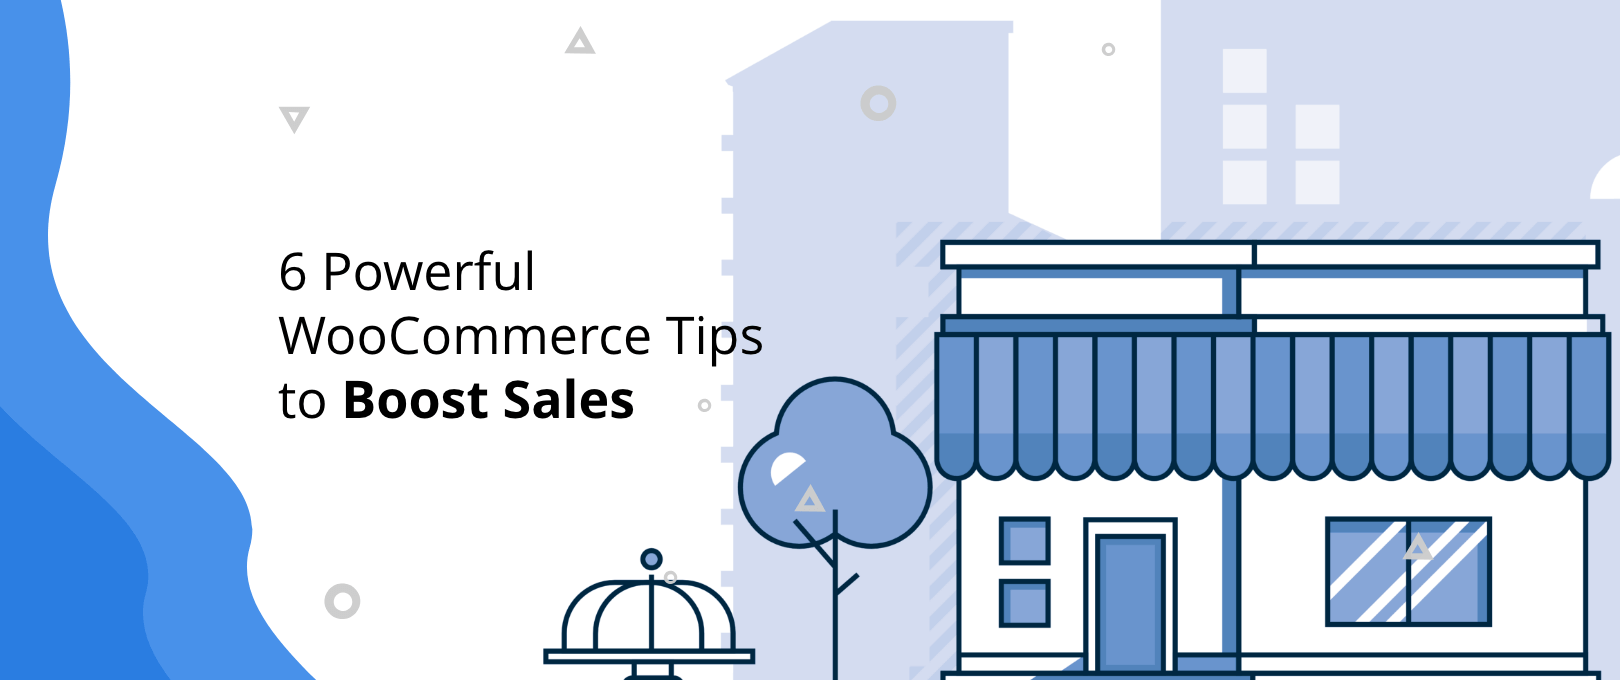 WooCommerce Tips Boost Sales